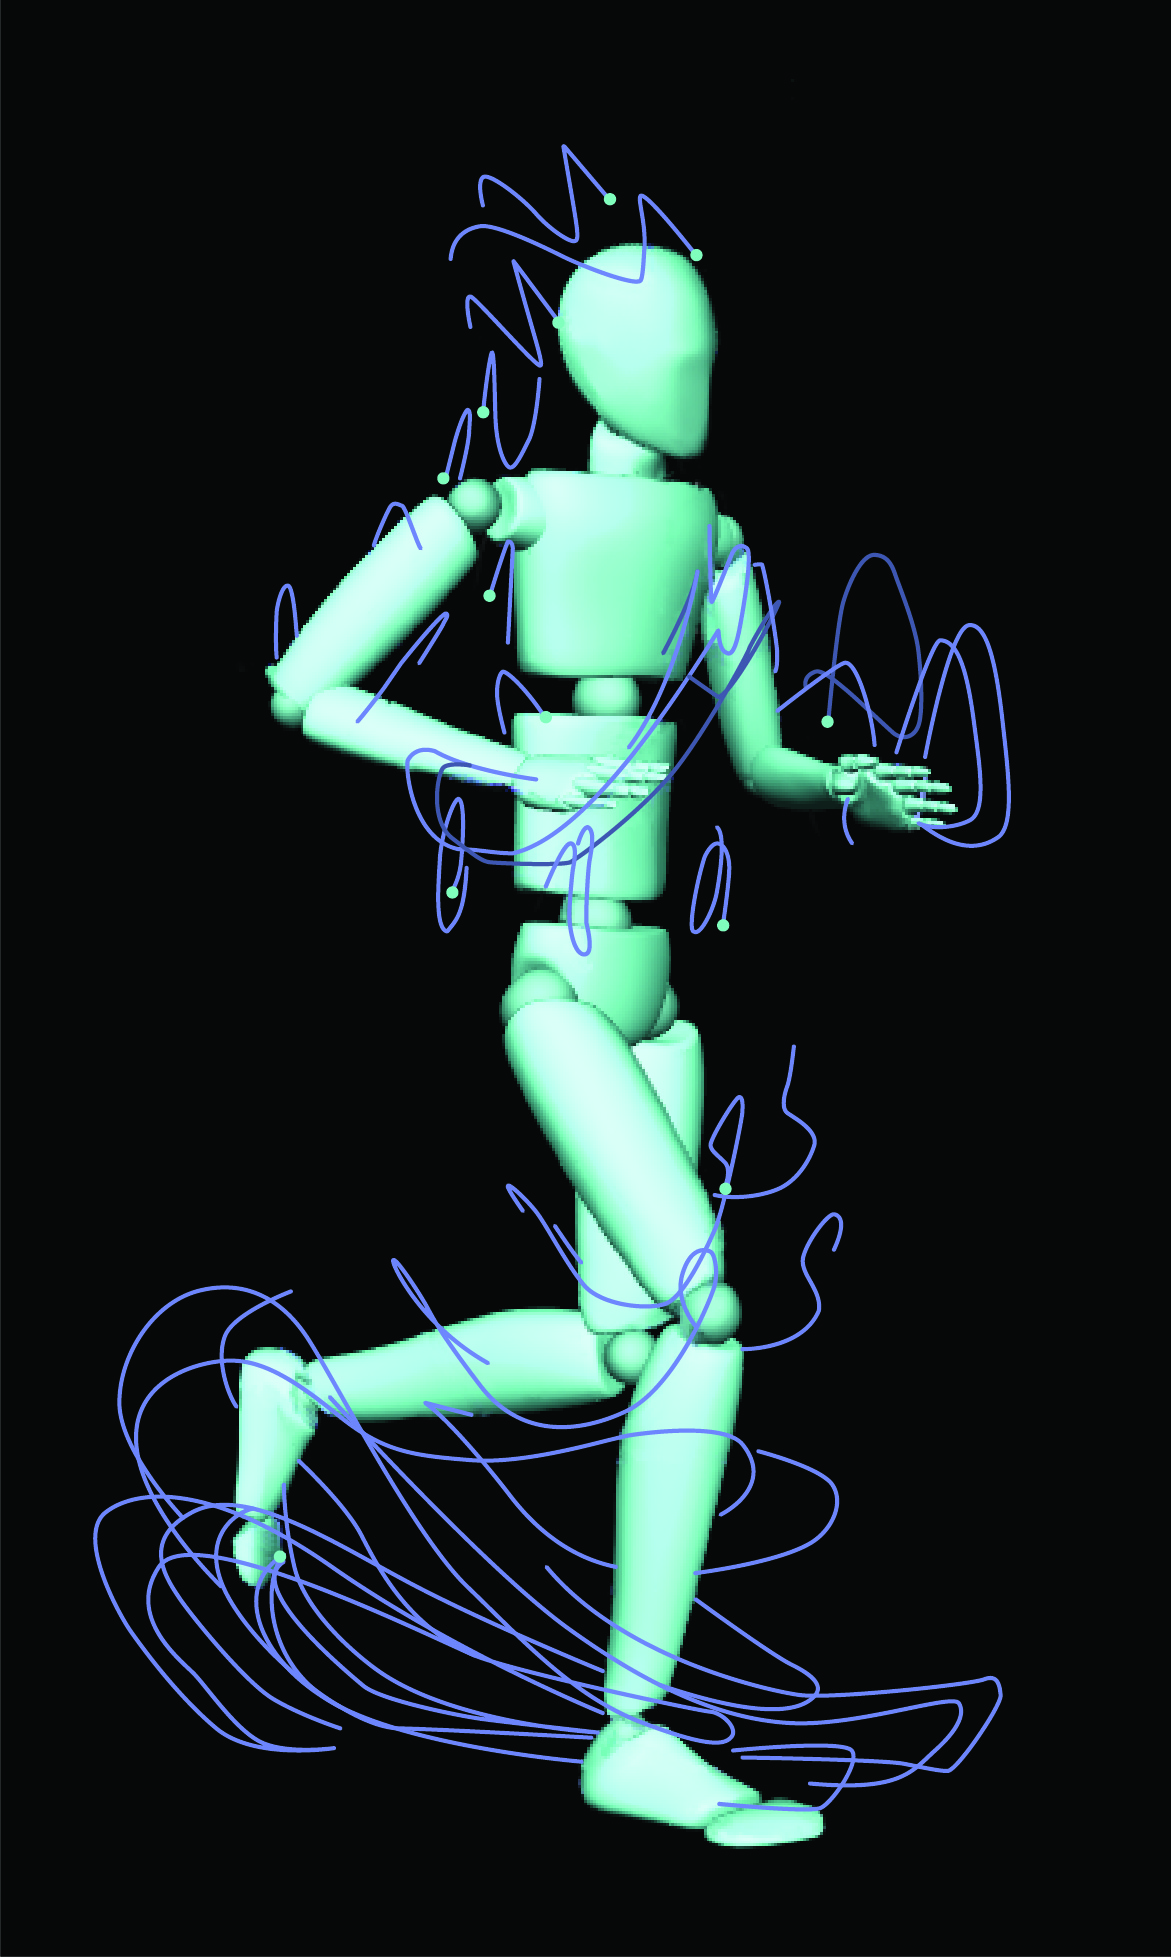 MoBI avatar with human traces.